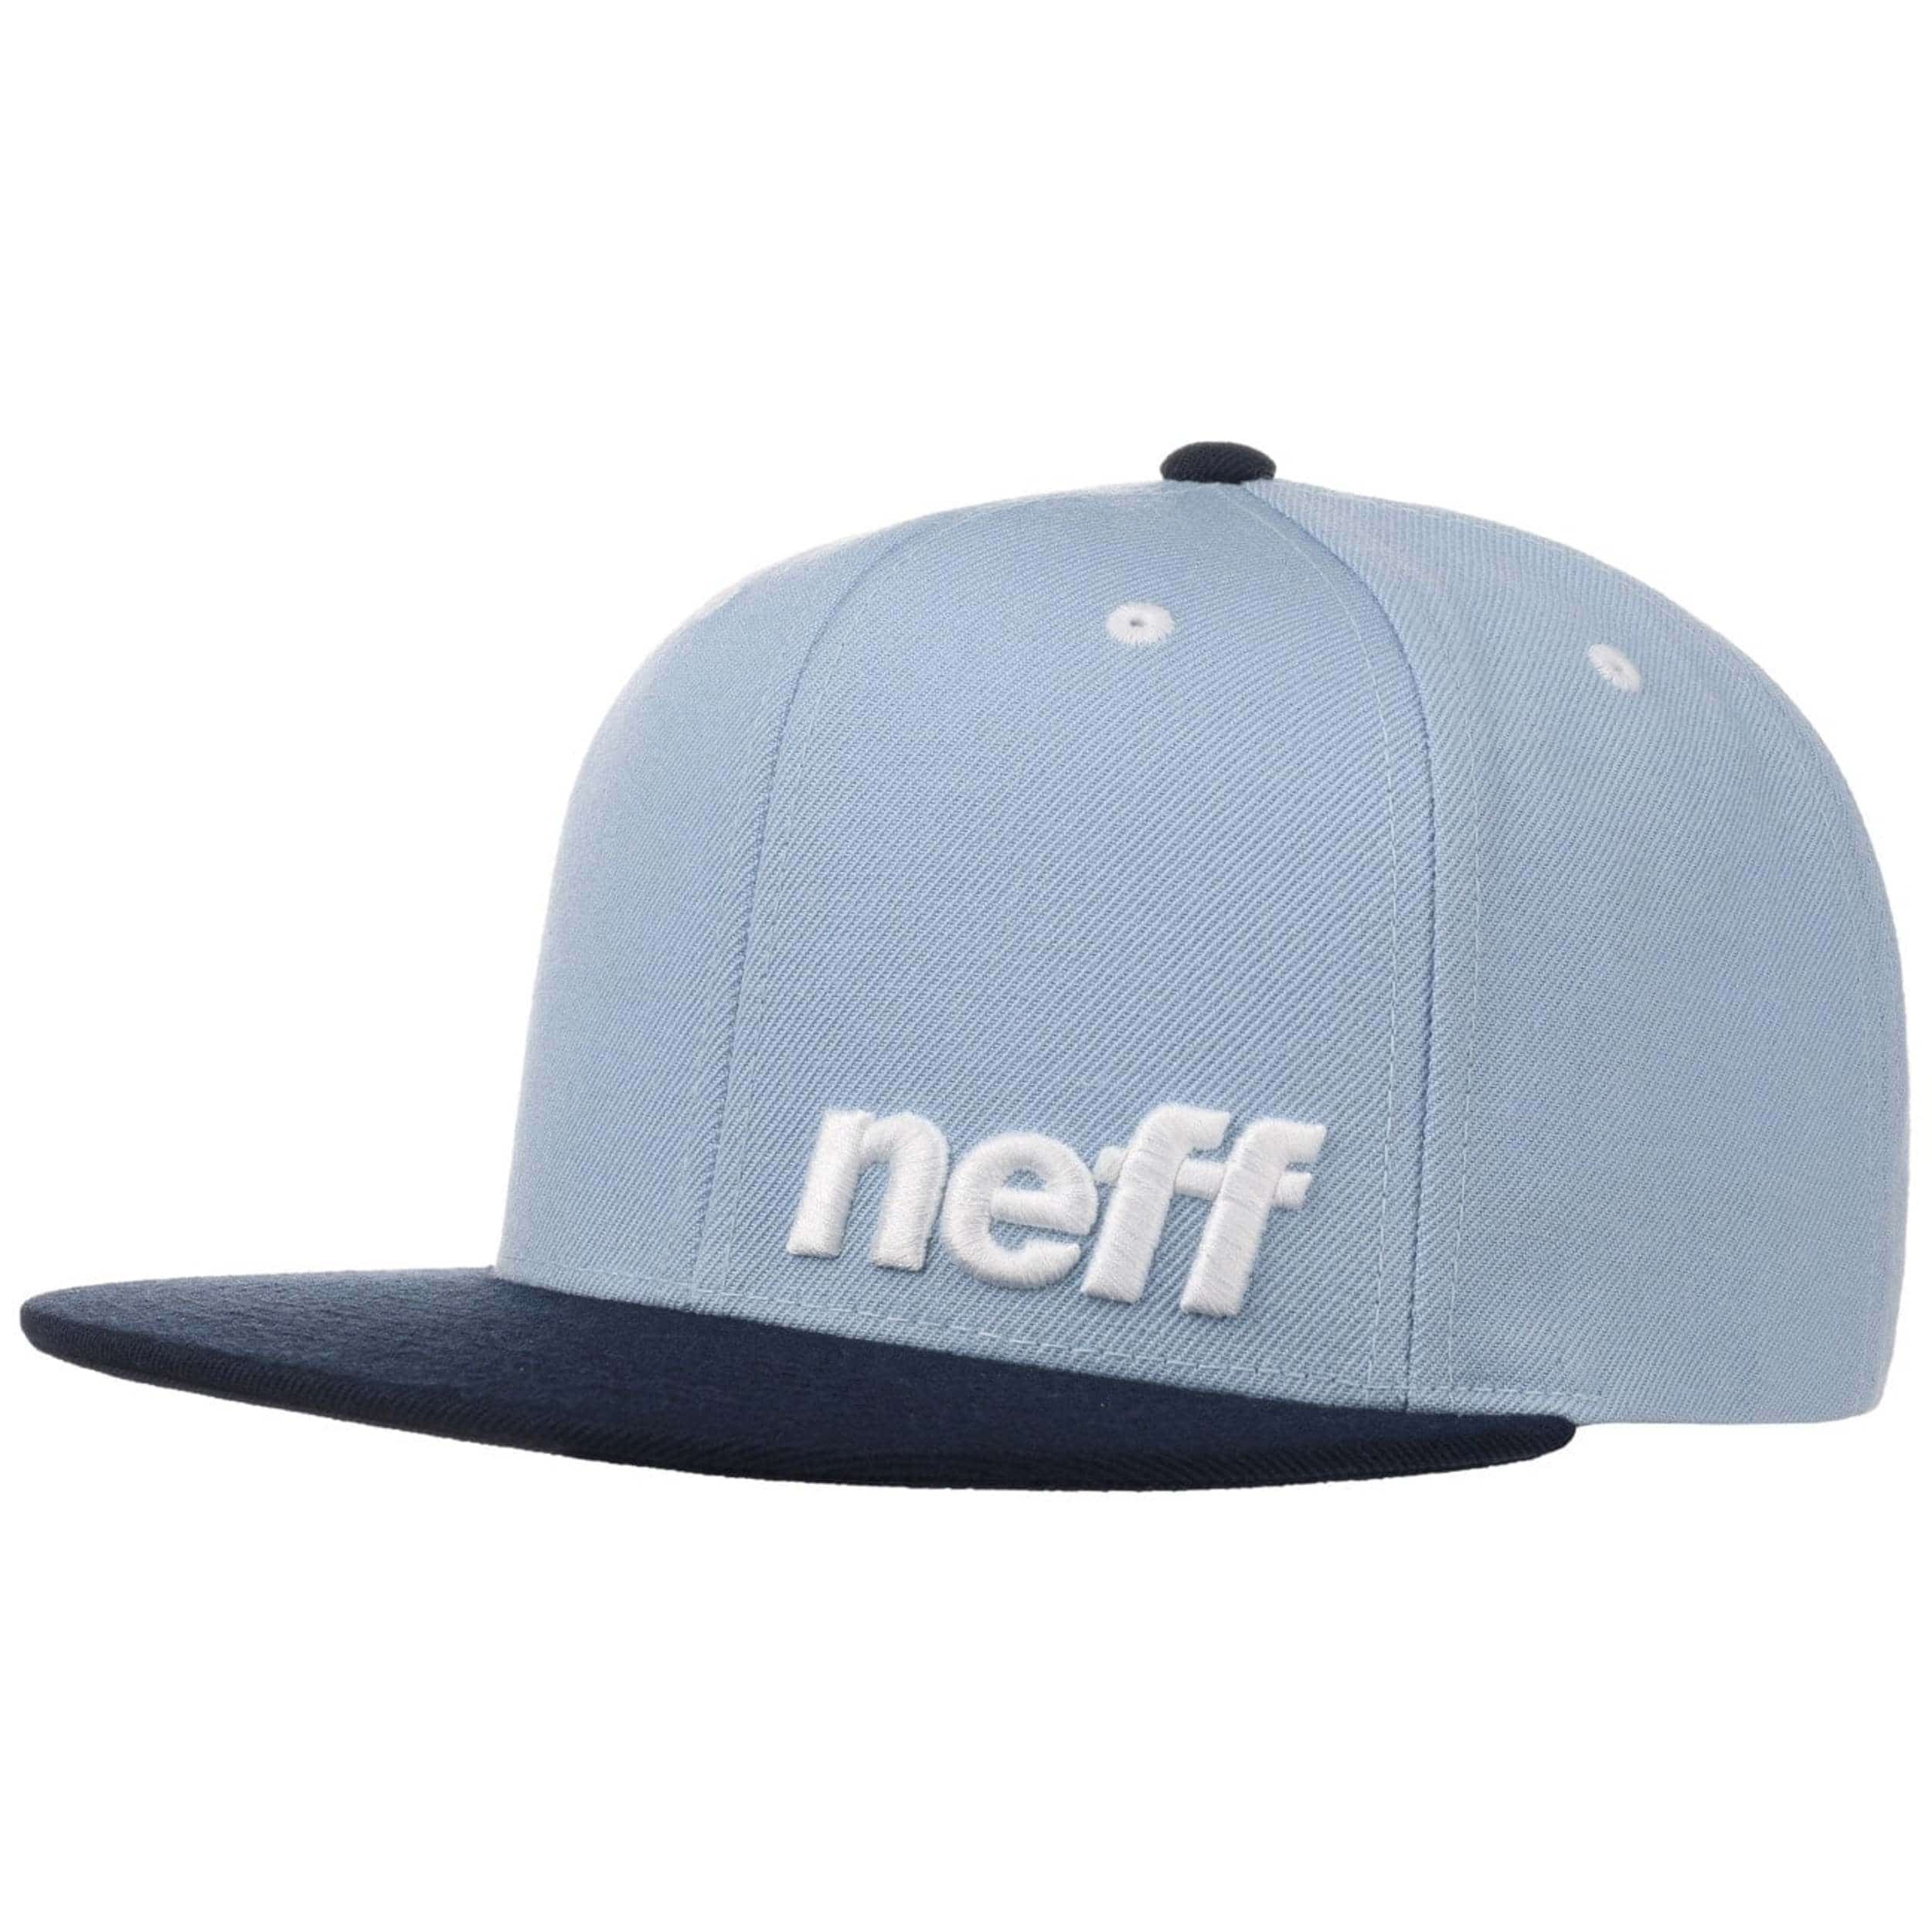 Daily 2 Tone Snapback Cap By Neff Eur 19 95 Gt Hats